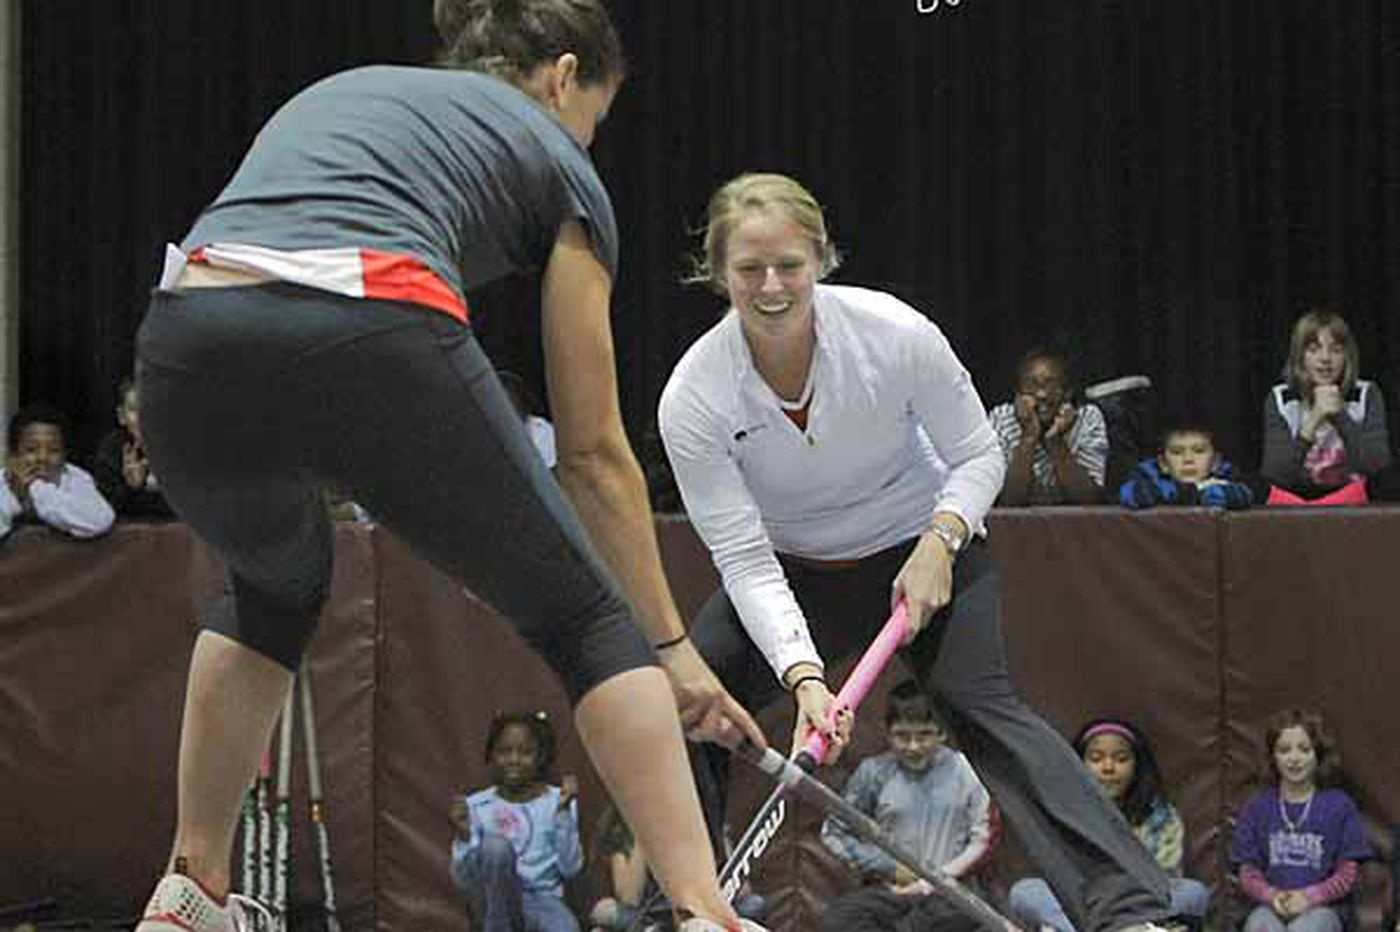 An Olympian from Berlin Township helps bring field hockey to the masses